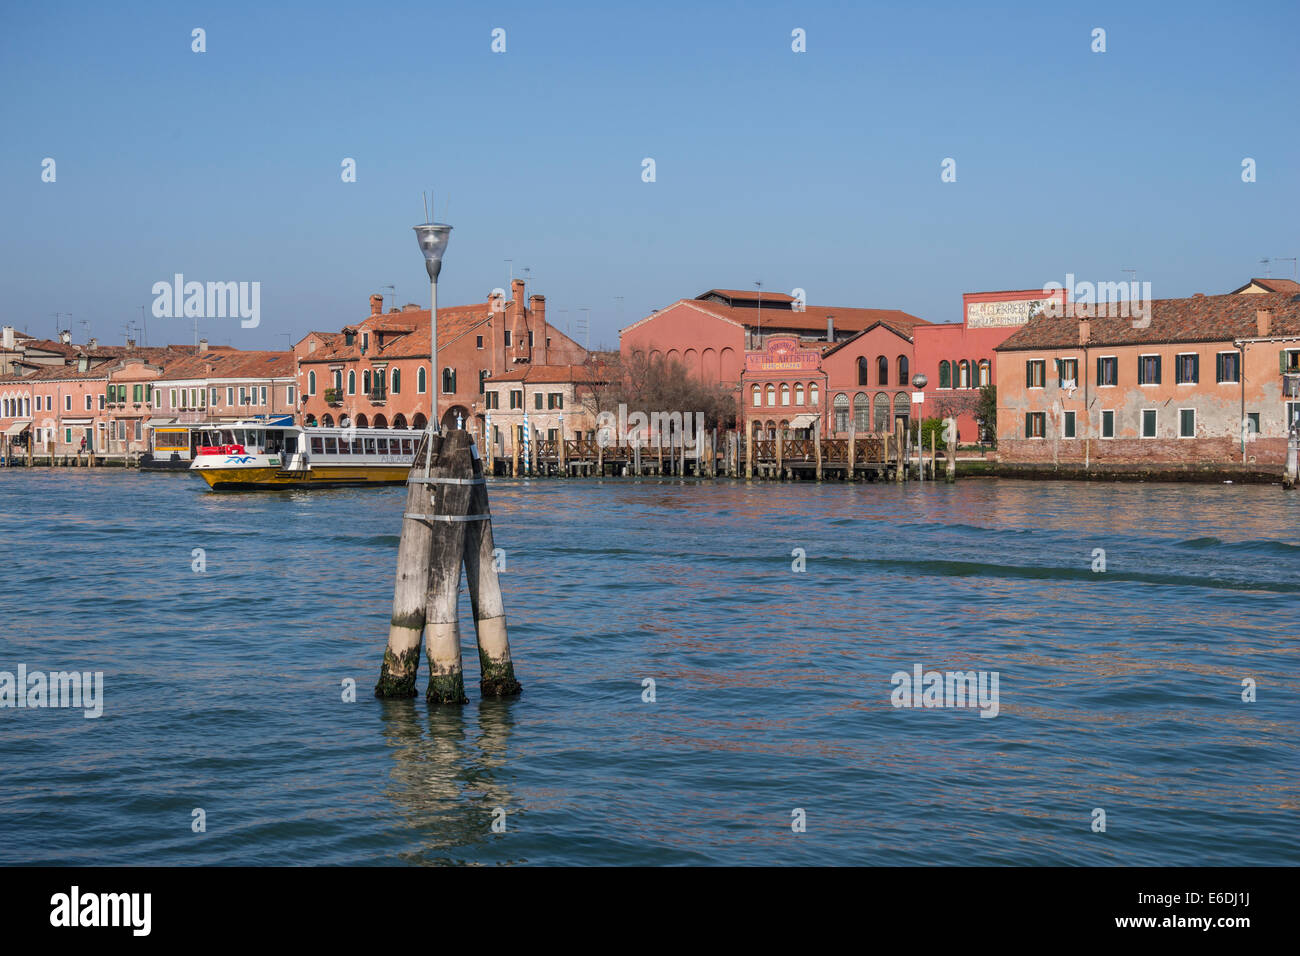 A vaporetto water bus leaves a landing on the Island of Murano in the Venetian Lagoon. - Stock Image